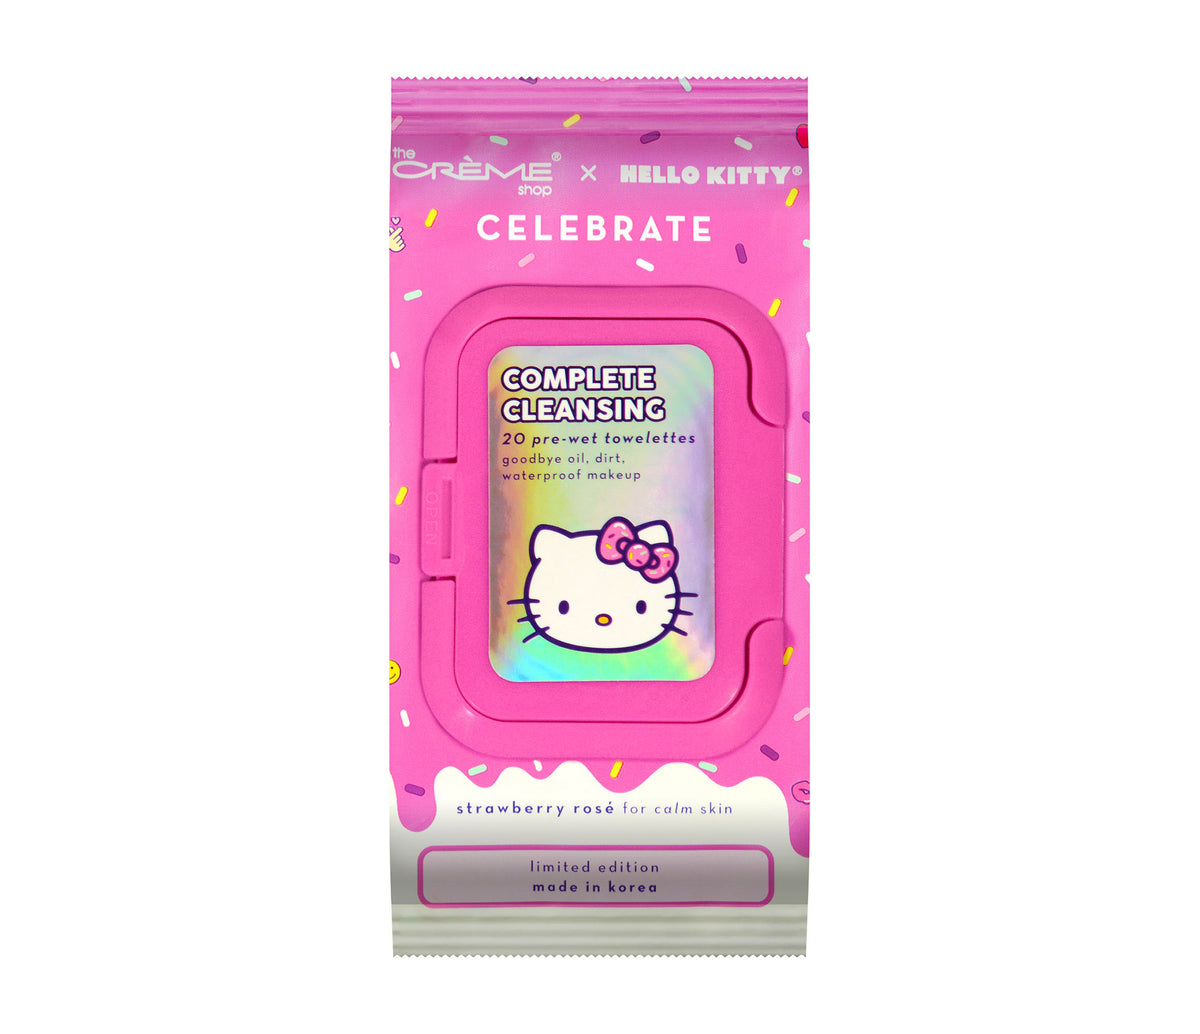 The Crème Shop x Hello Kitty Celebrate Complete Cleansing Towelettes Strawberry Rose